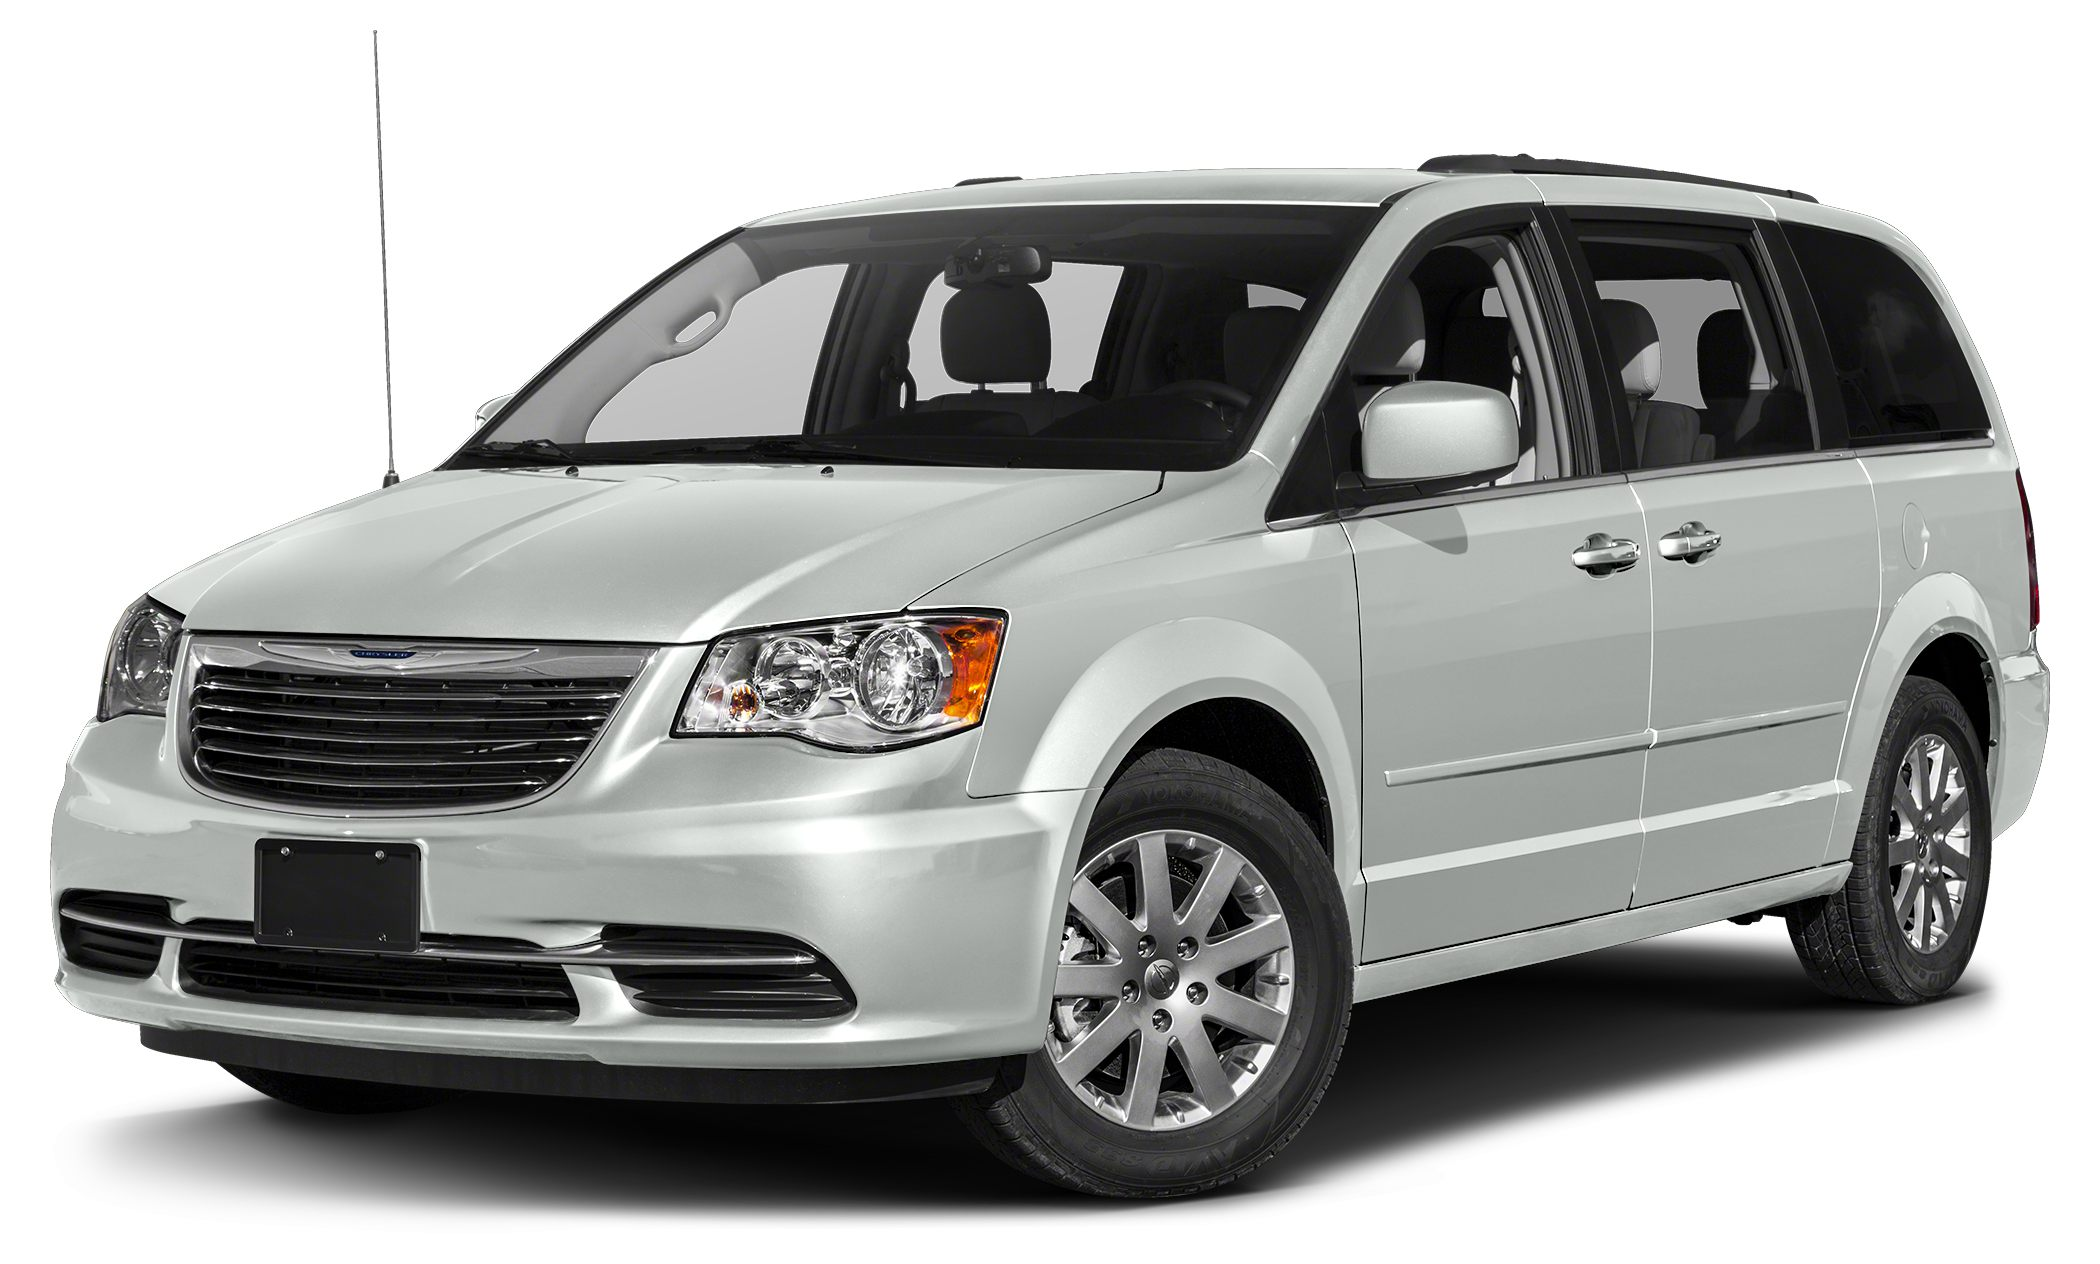 2016 Chrysler Town  Country Touring 2016 Chrysler Town  Country Touring in White and One Year Fr